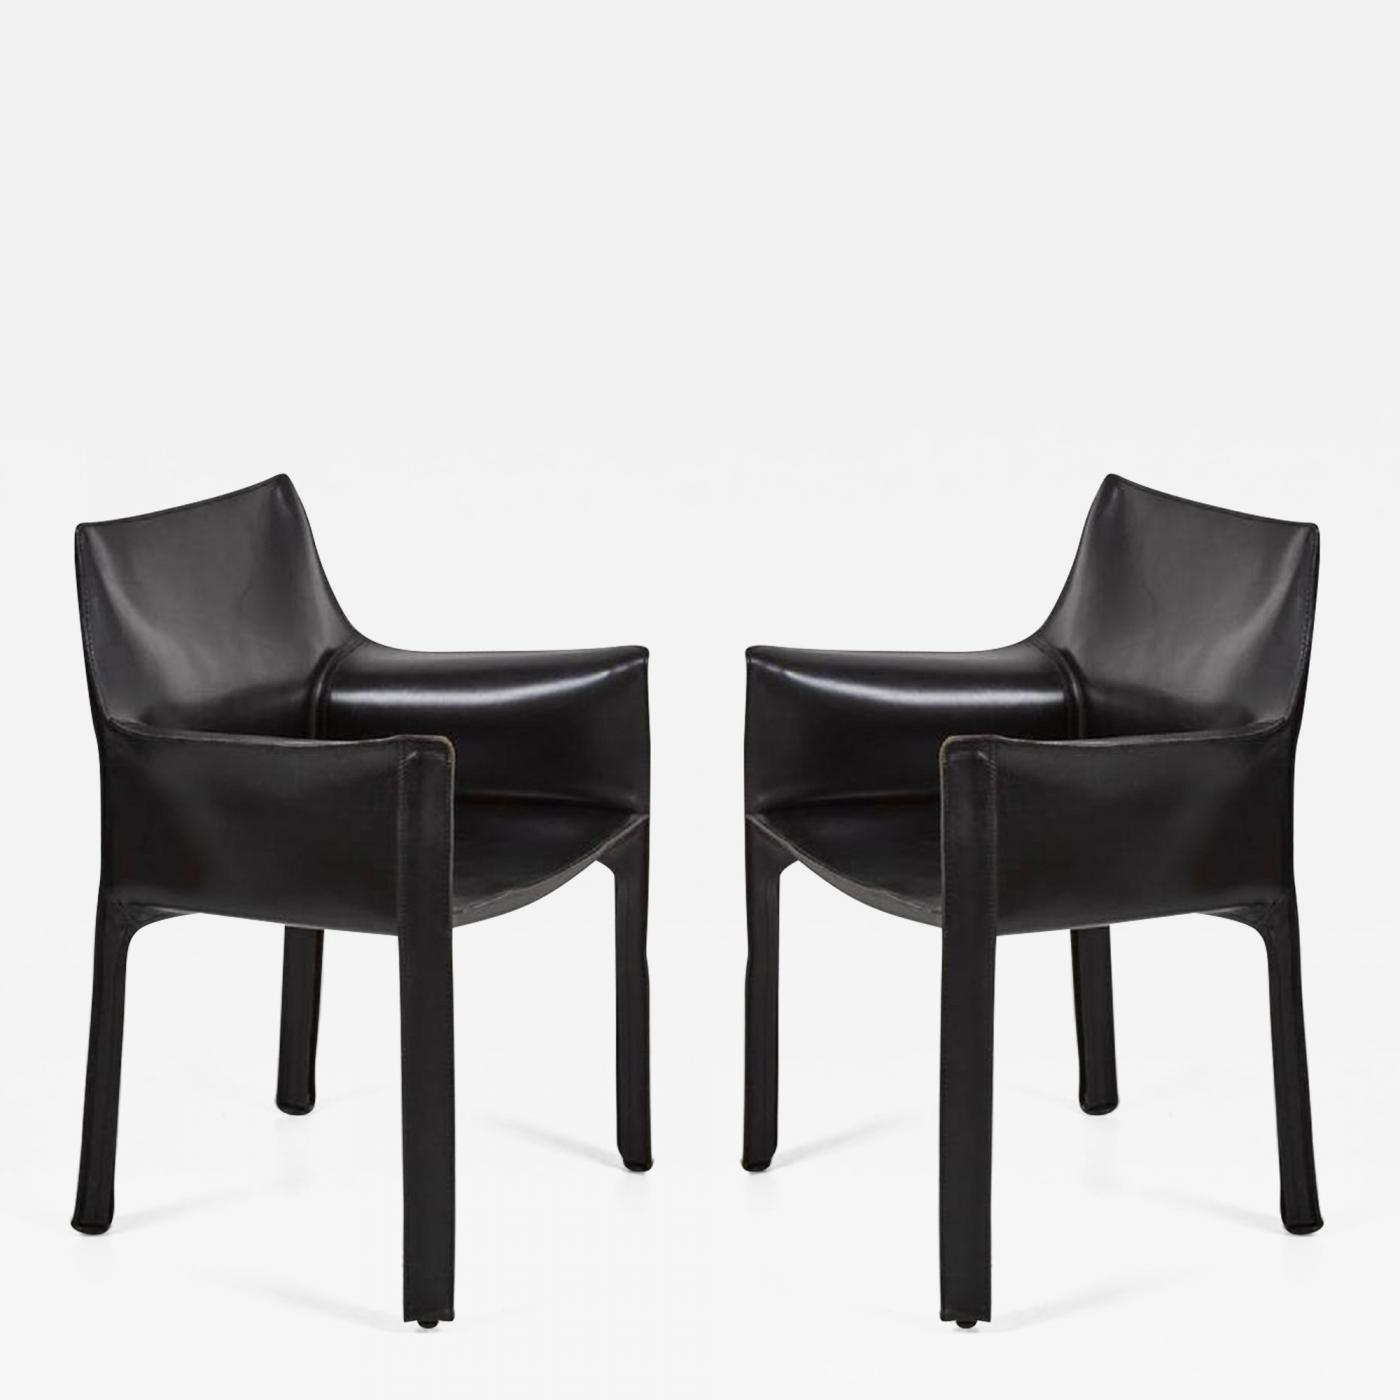 Arm Chairs Mario Bellini Pair Of Cassina Cab Arm Chairs By Mario Bellini